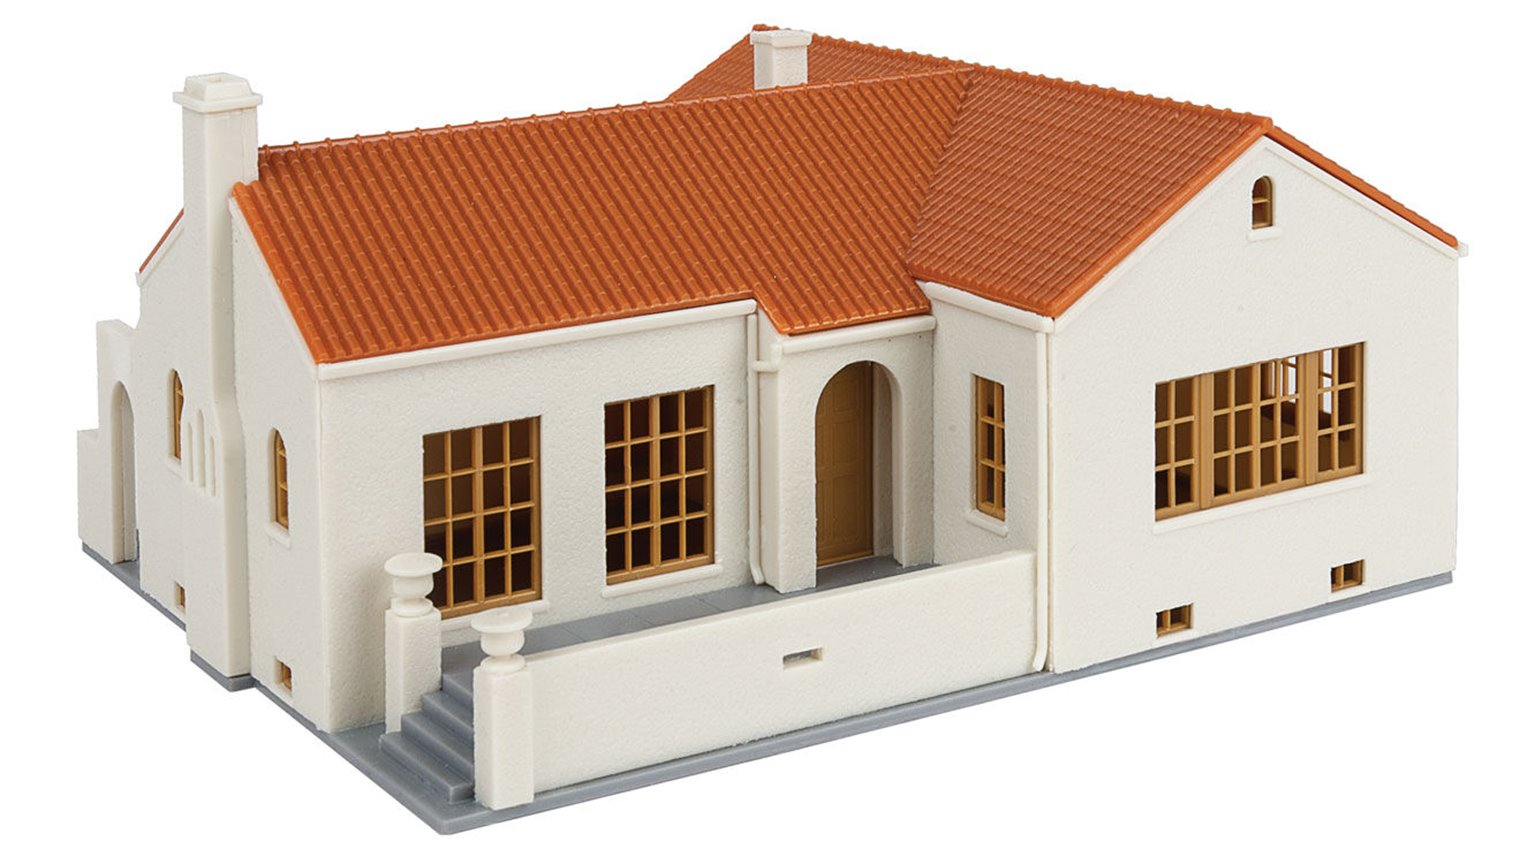 Mission Style Bungalow House Kit